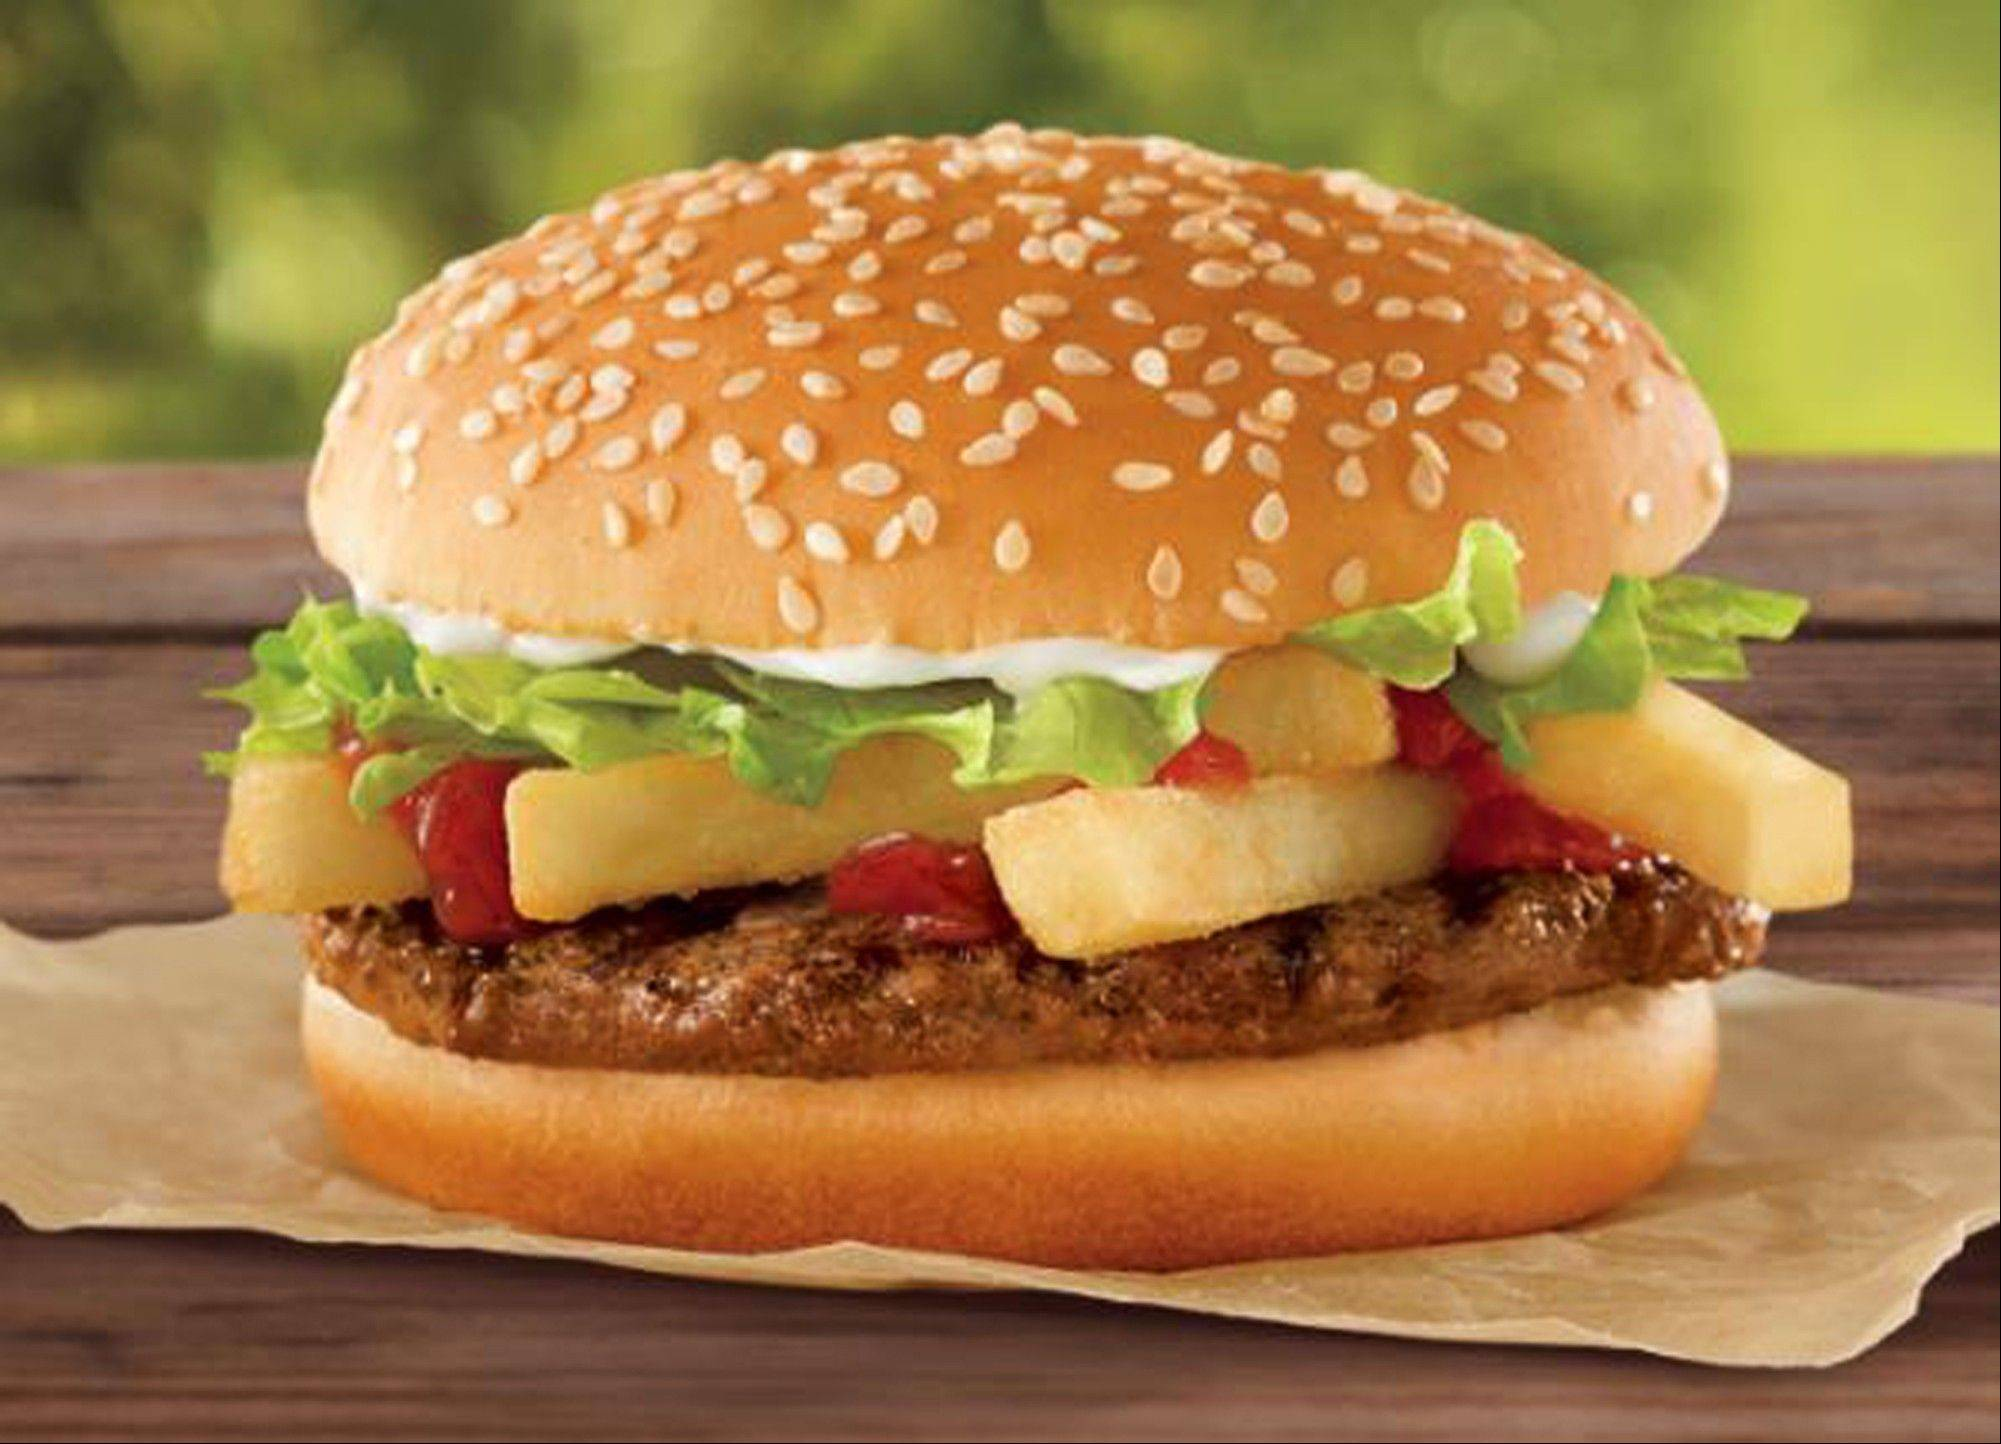 This undated photo provided by Burger King shows a a �French Fry Burger,� which Burger King is rolling out for $1 as the company looks to fend off a Dollar Menu push by McDonald�s.